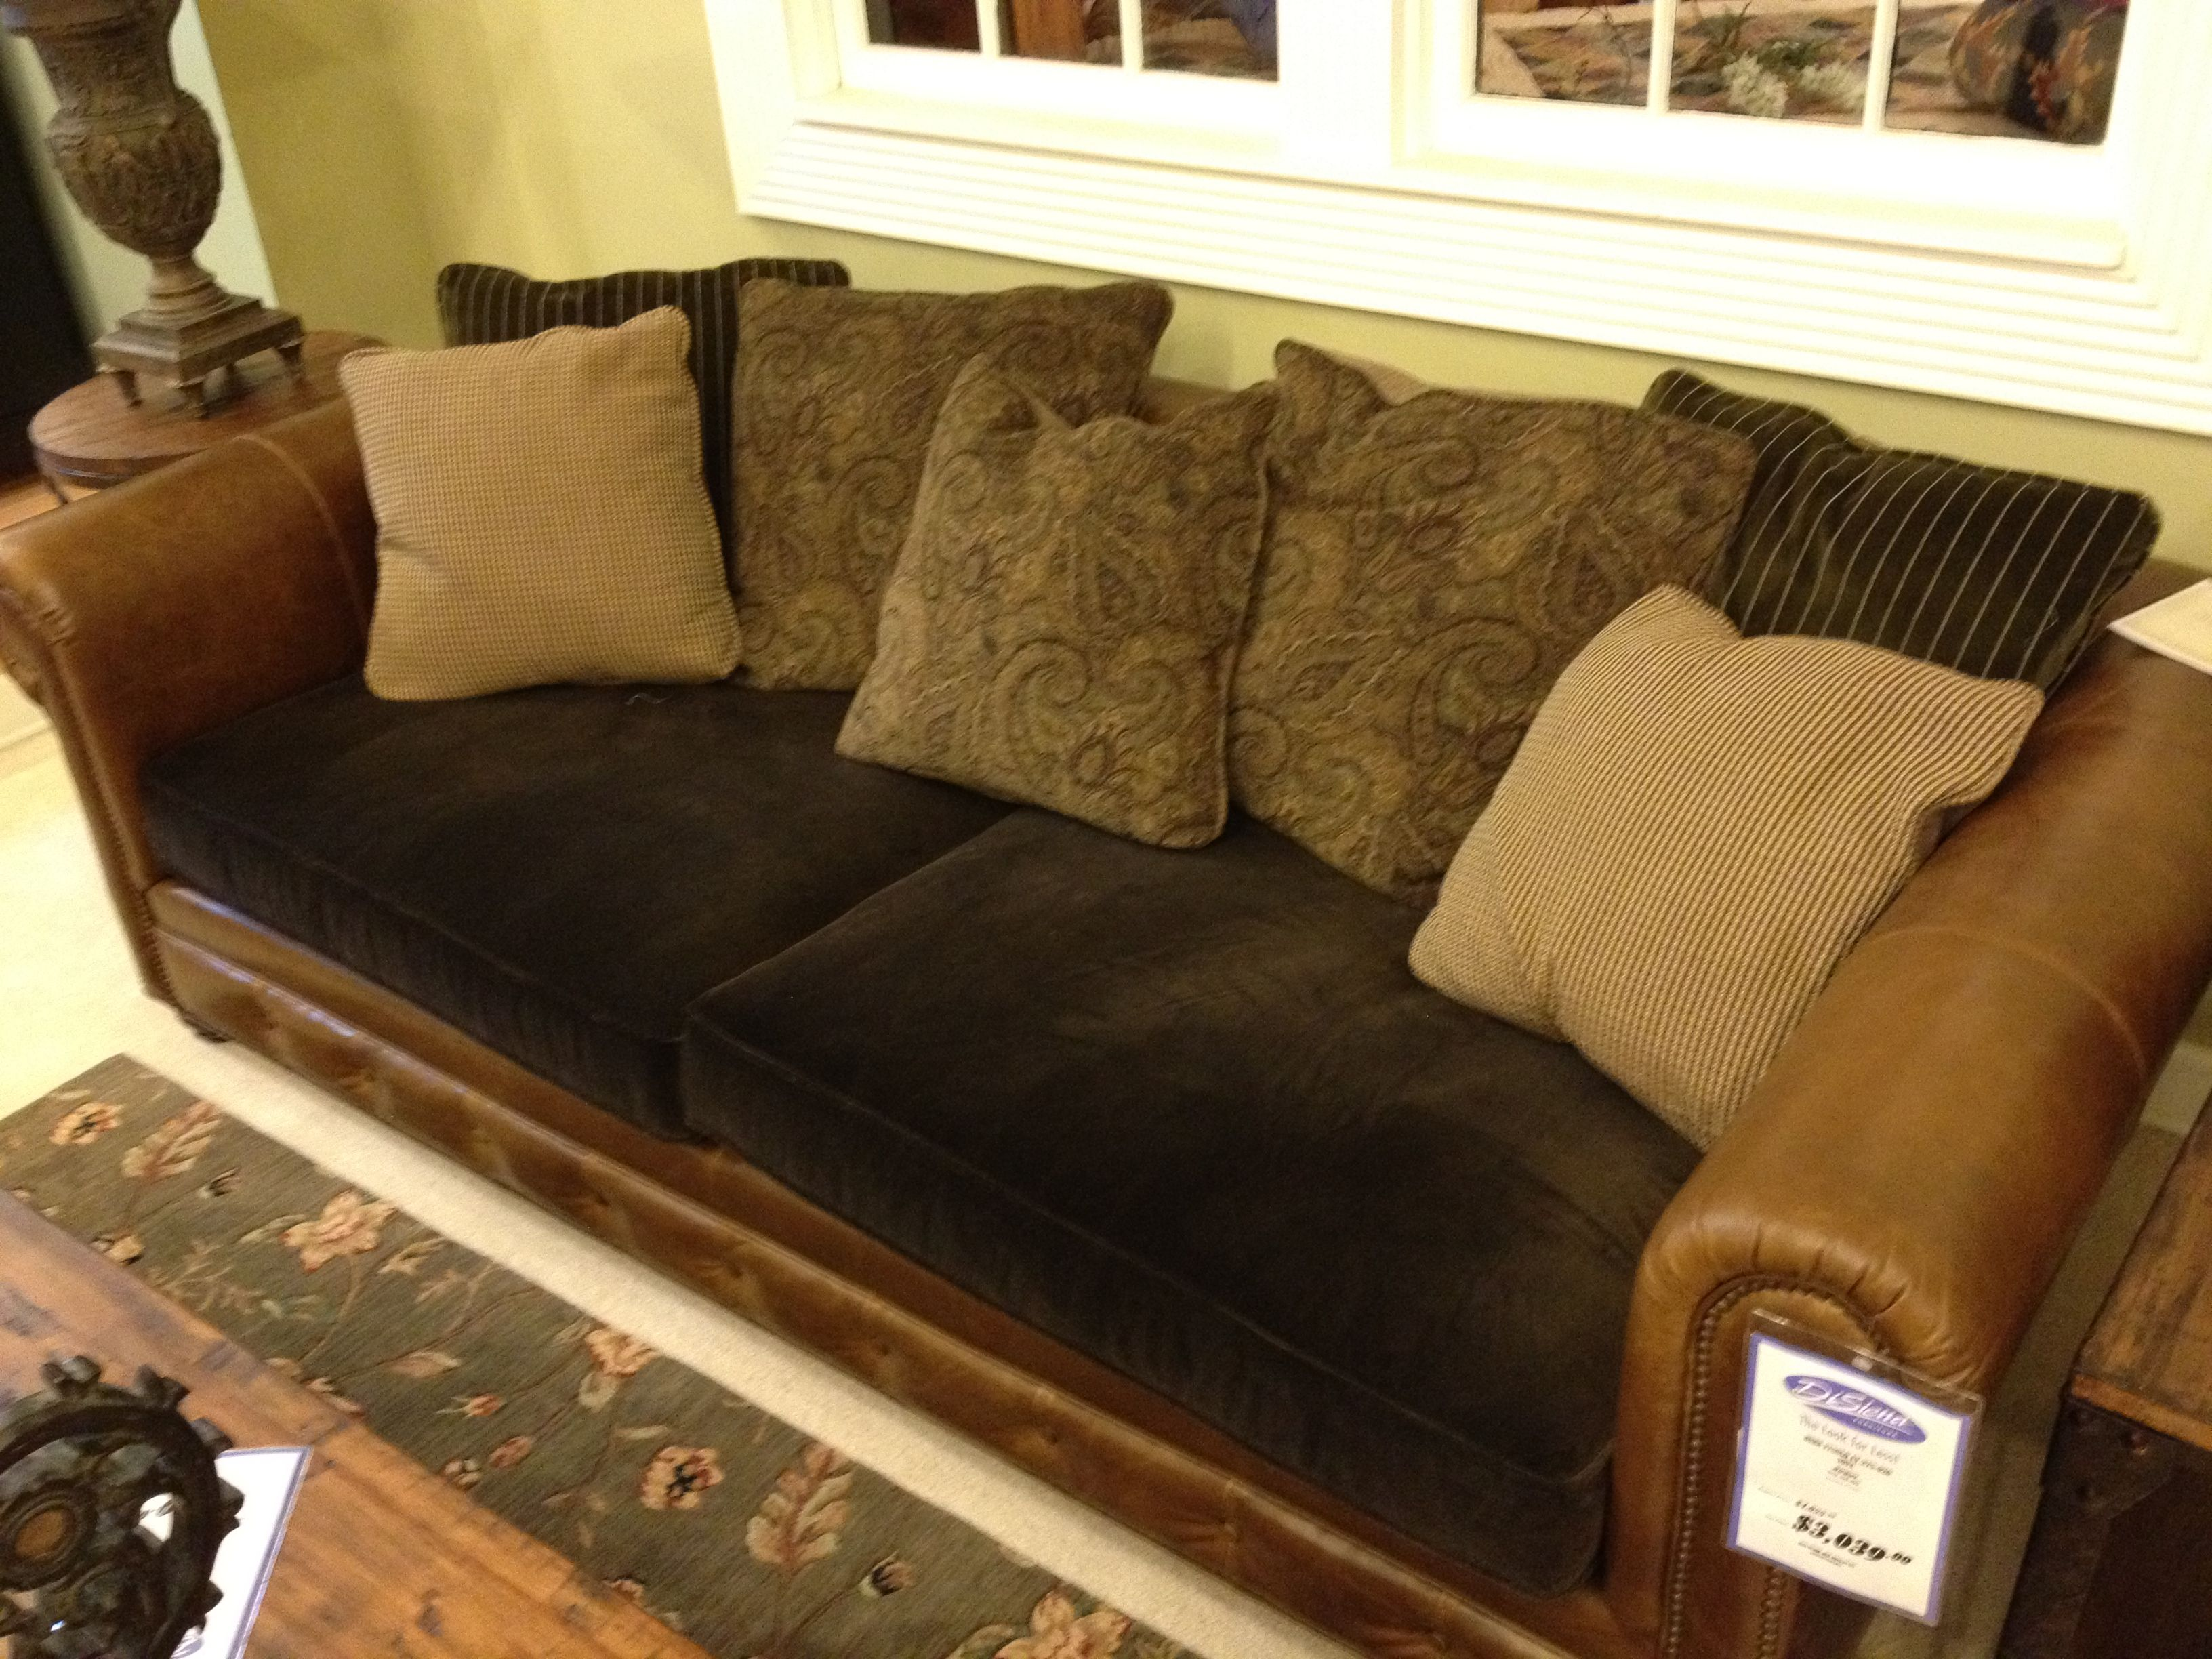 Leather Couch With Fabric Cushions Cushions On Sofa Sofa